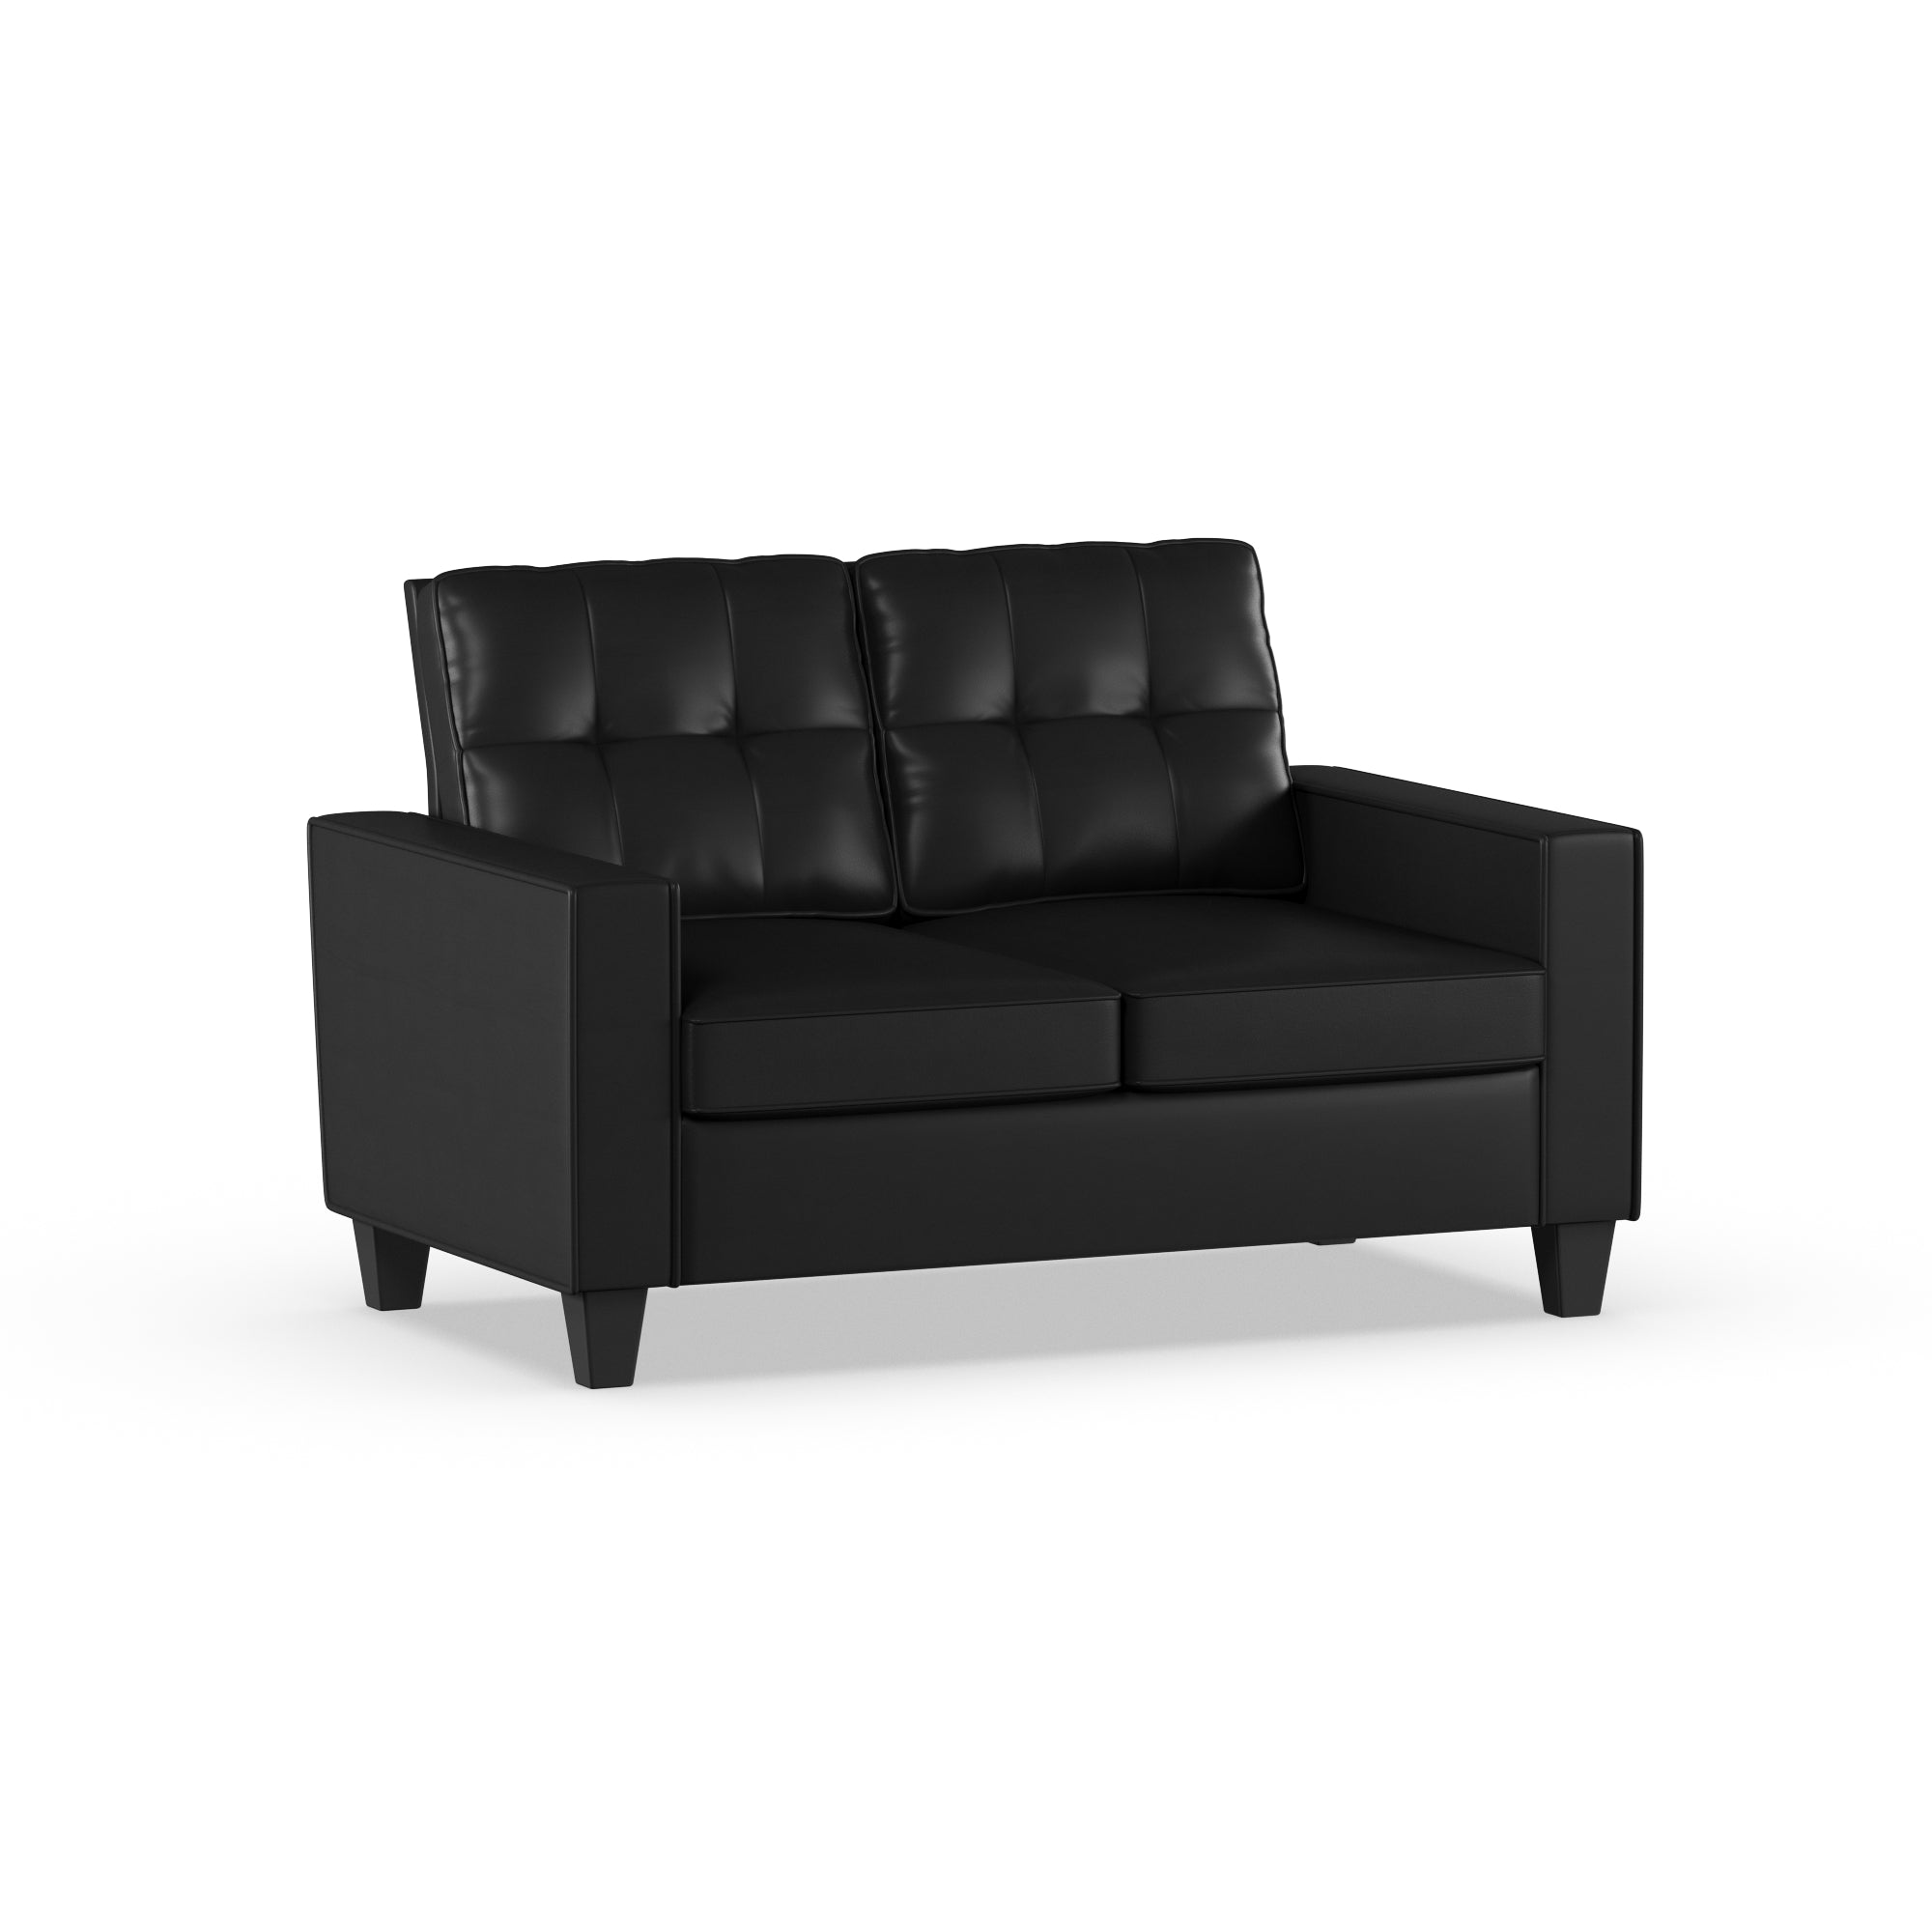 Mainstays Faux Leather Apartment Loveseat, Multiple Colors - FLJ CORPORATIONS